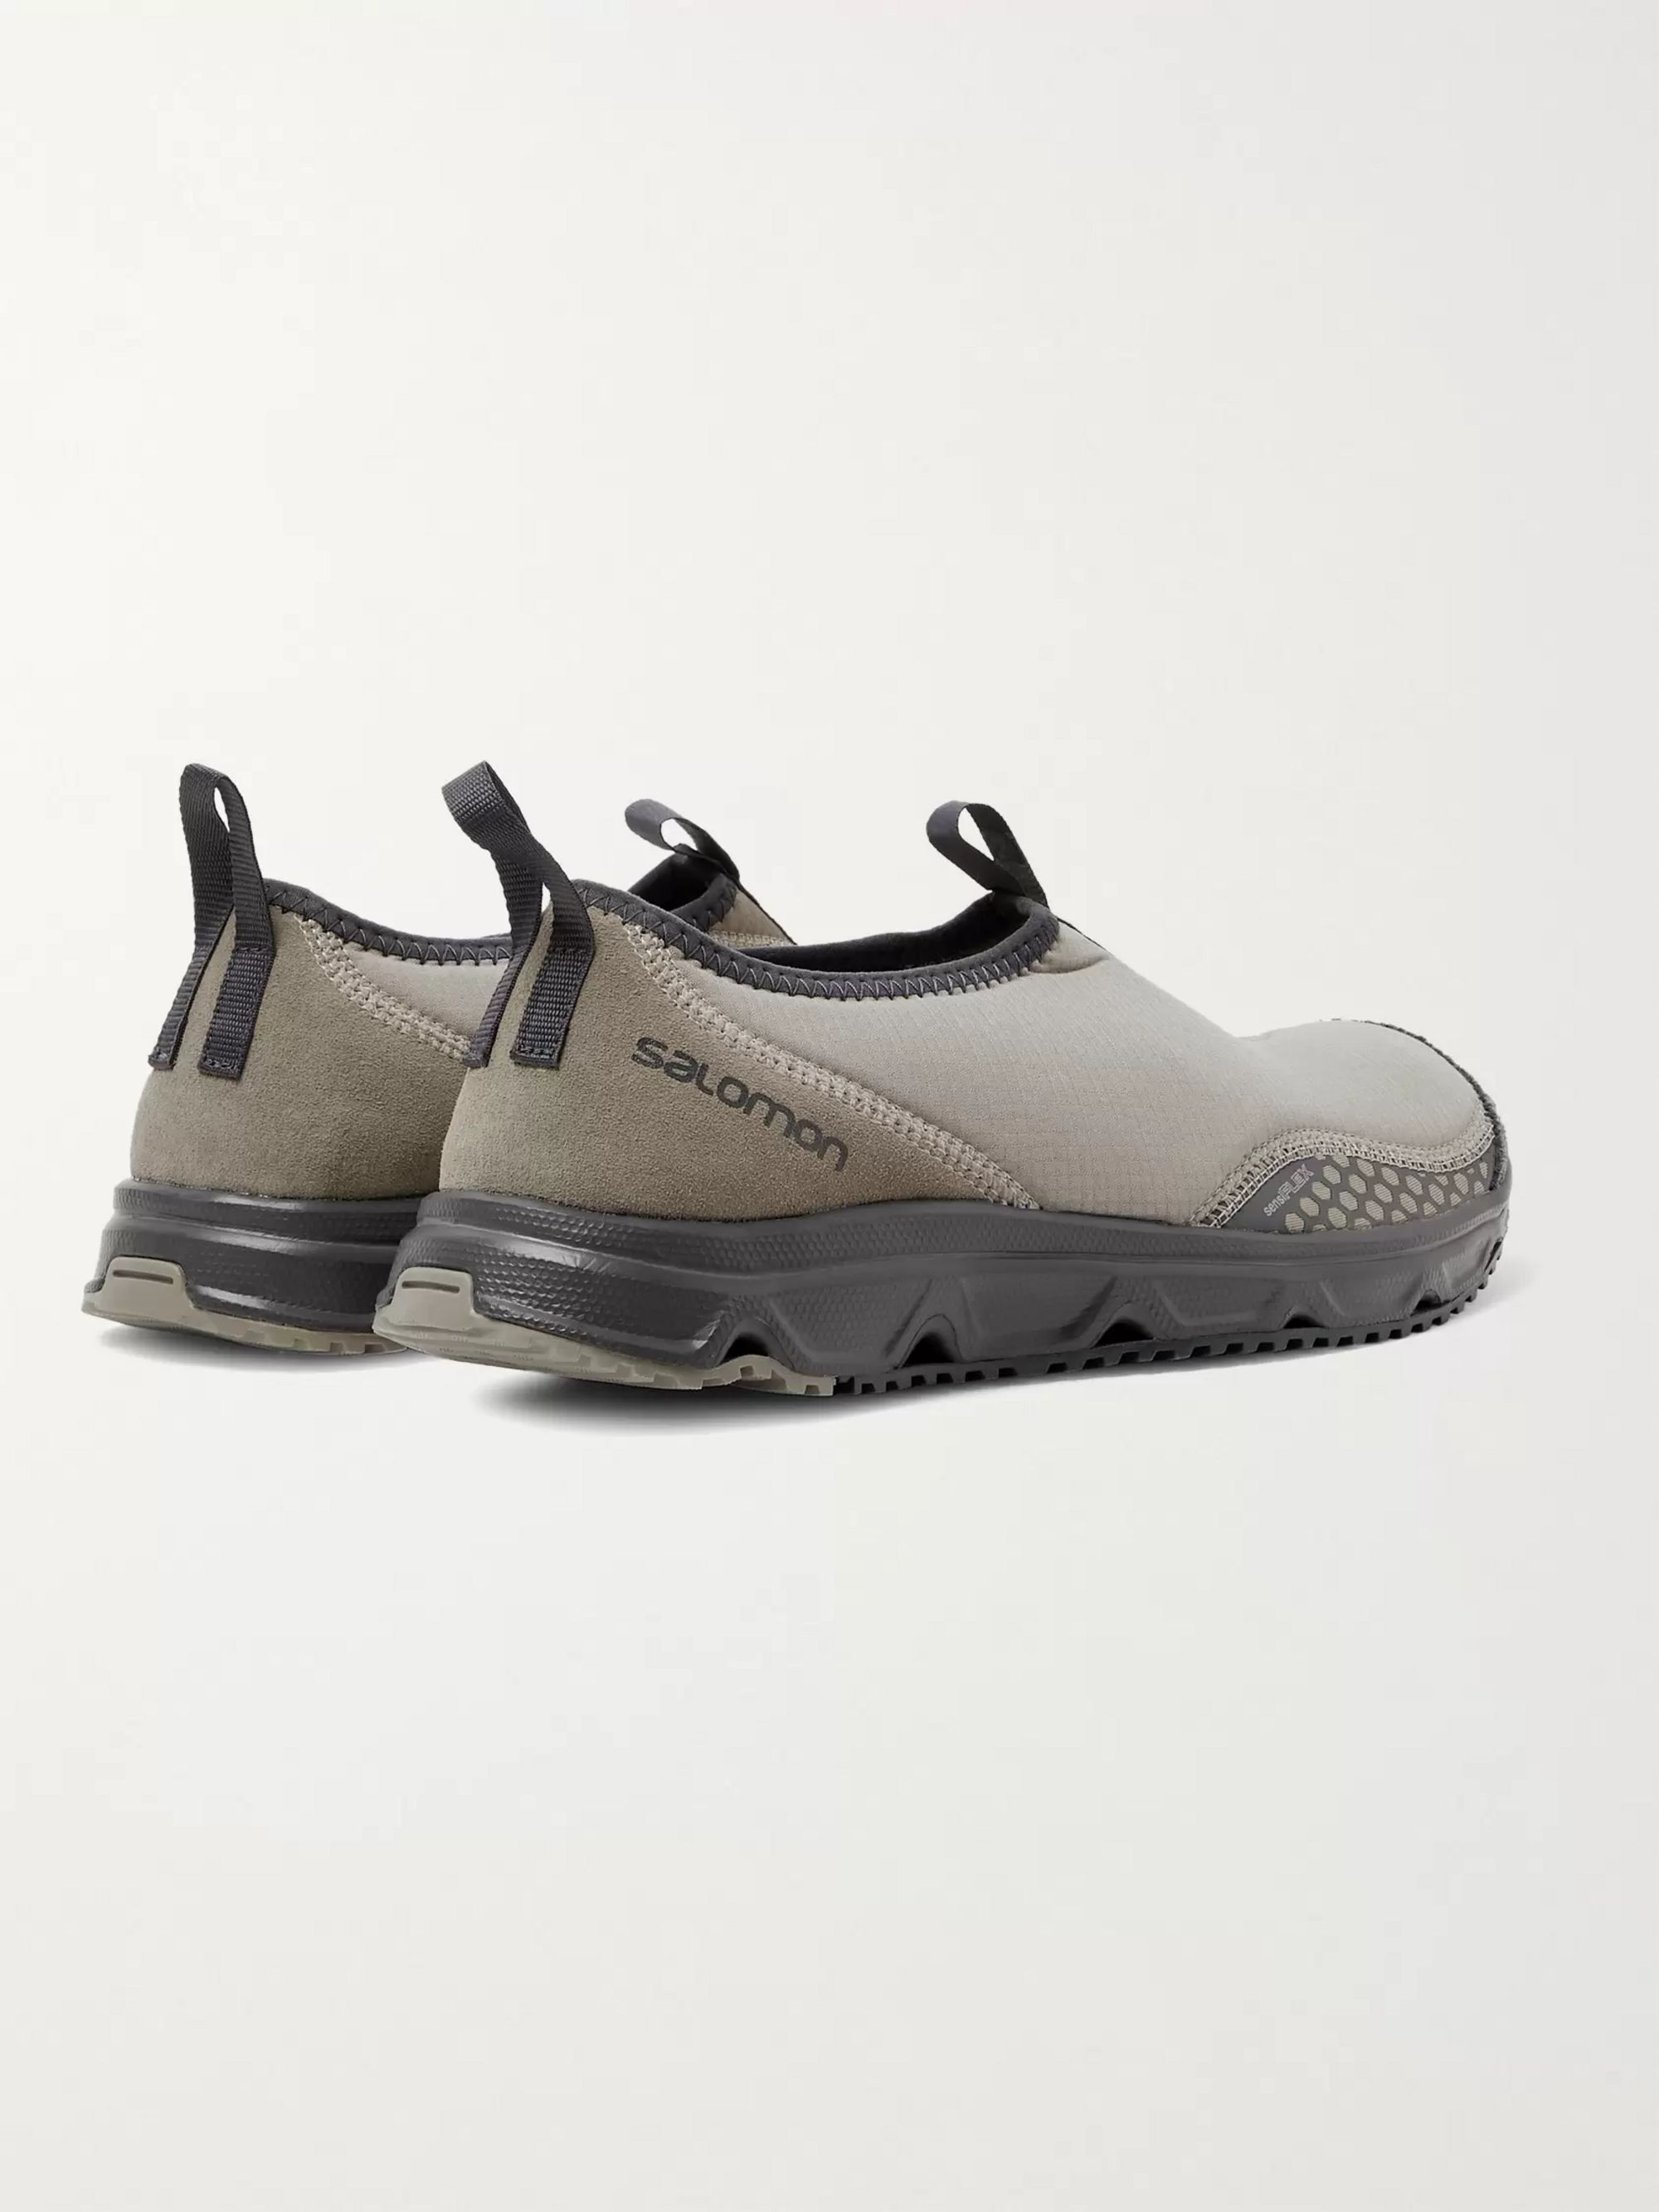 Beige Rx Snow Moc Advanced Ripstop, Suede And Rubber Sneakers | Salomon